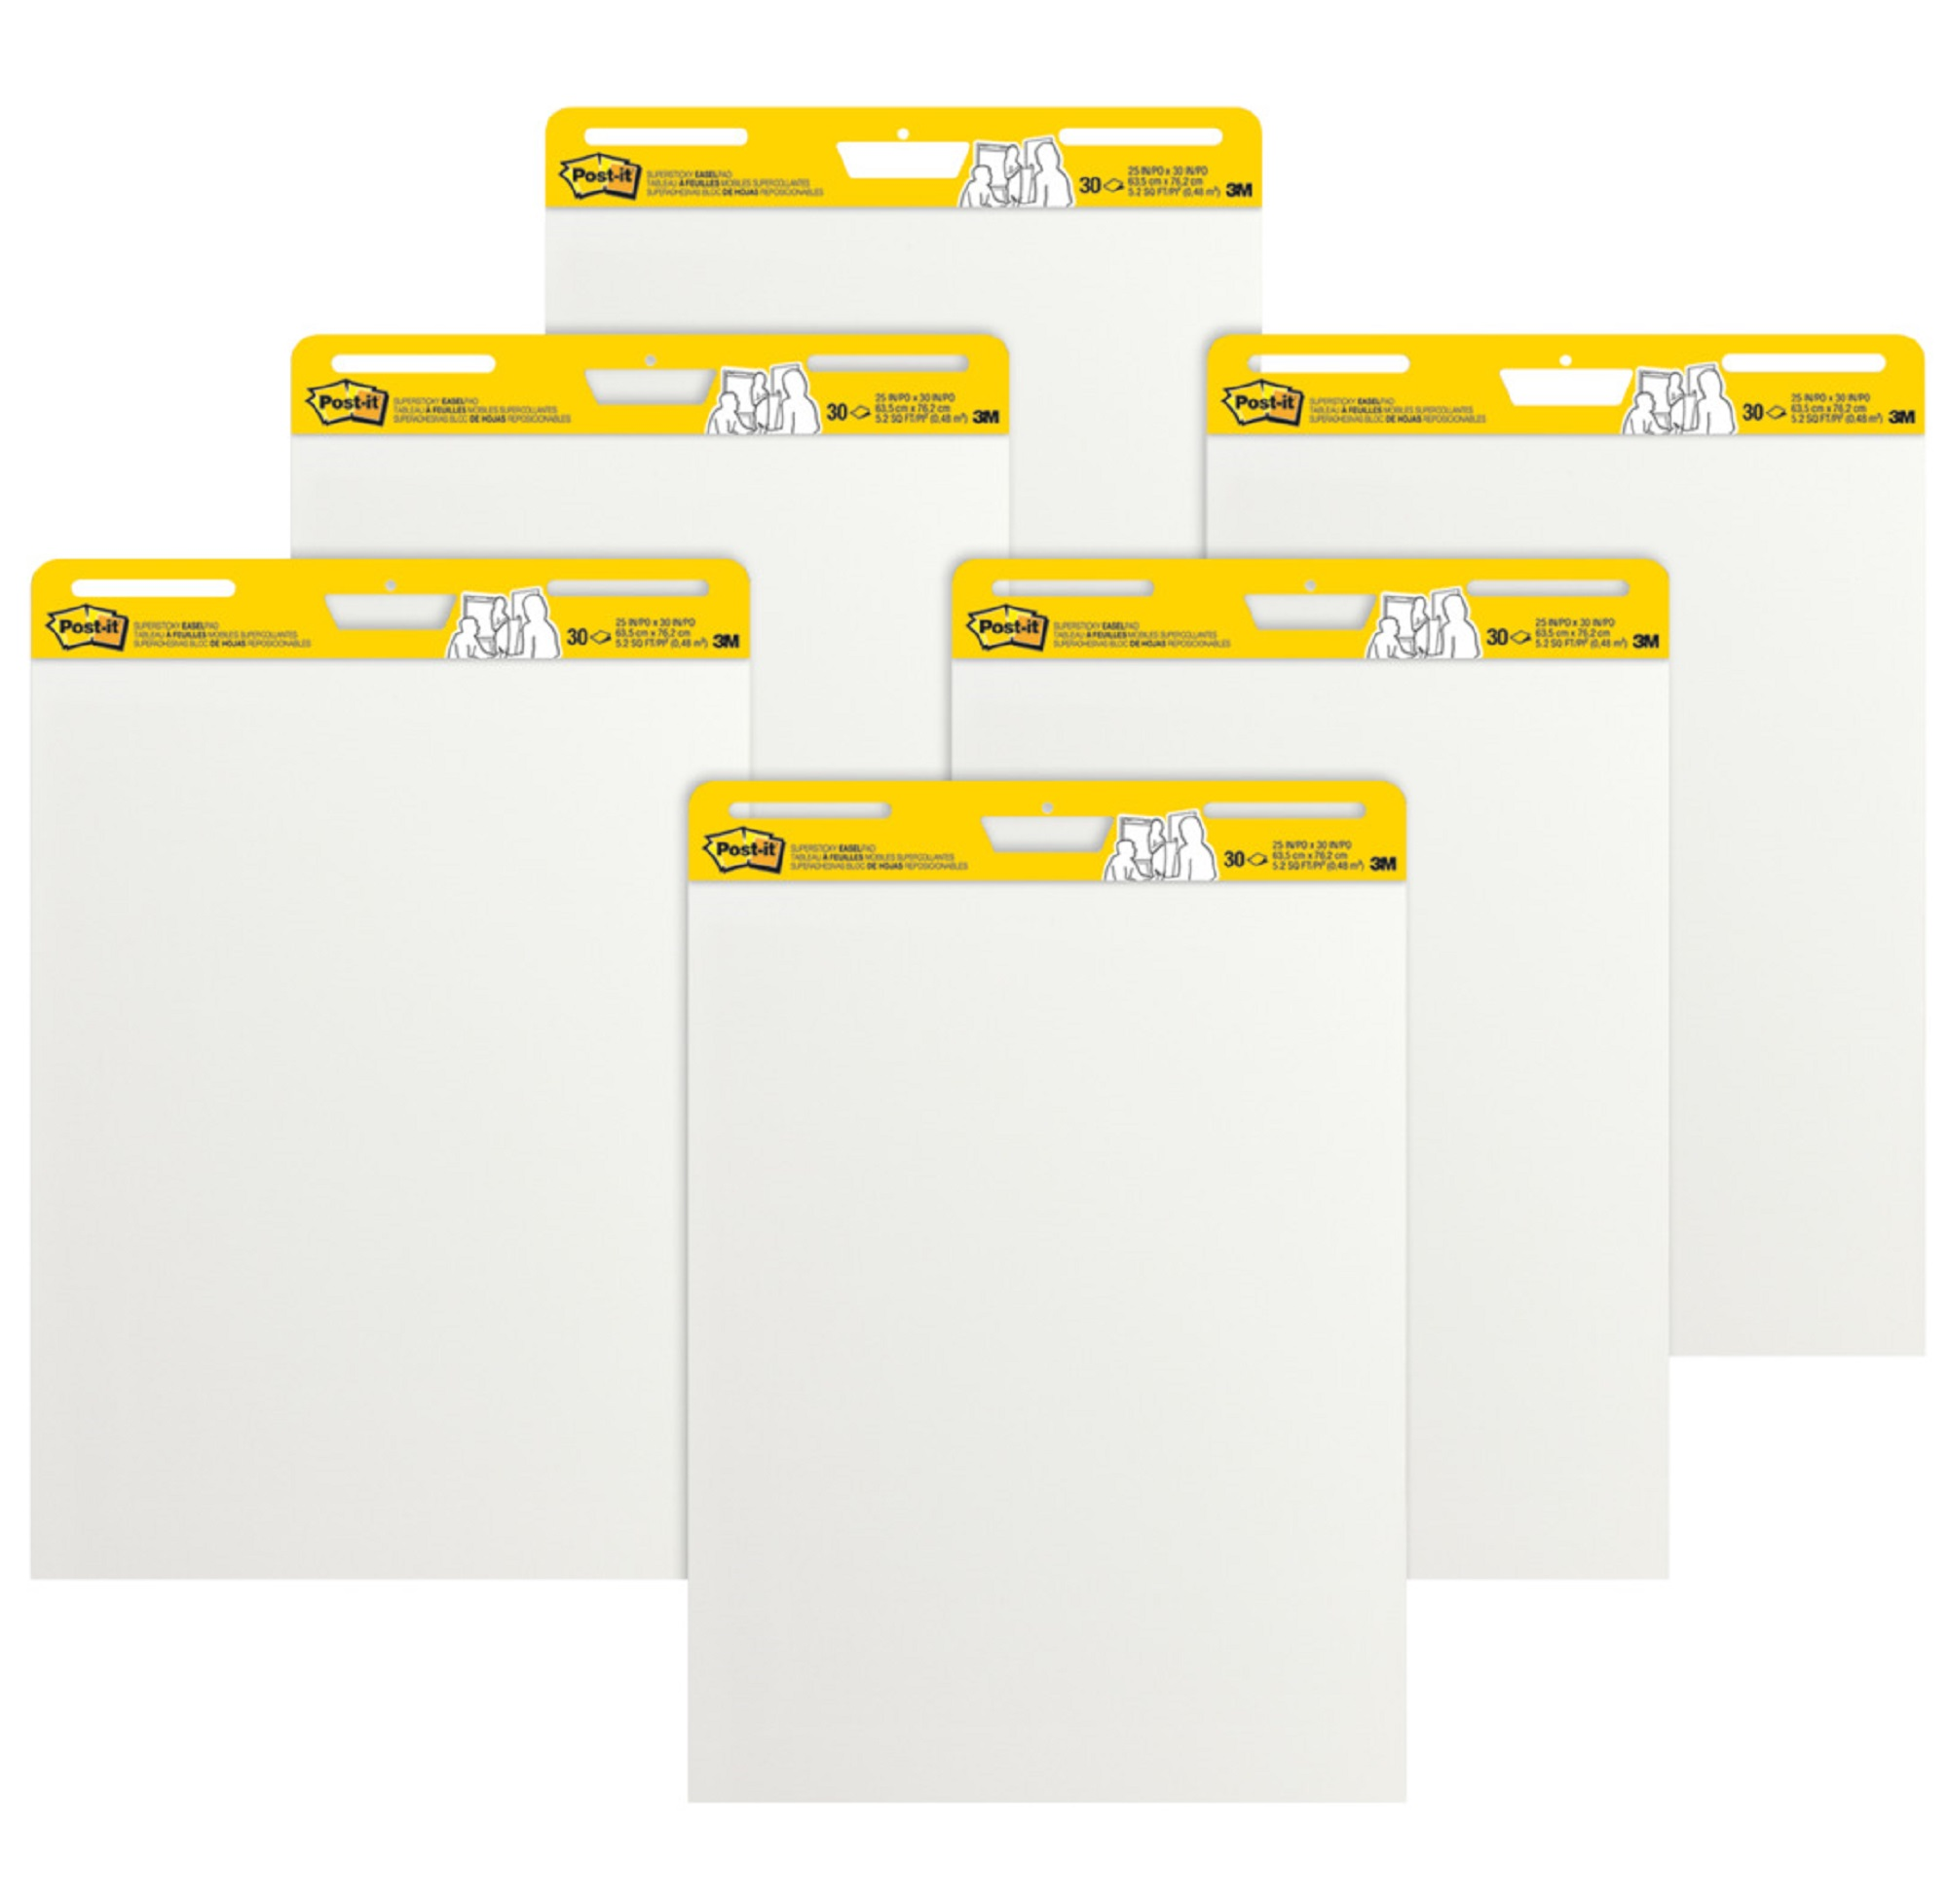 Post-it Super Sticky Easel Pad (6 Count), 25 x 30 inches, 30 Sheets/Pad, White